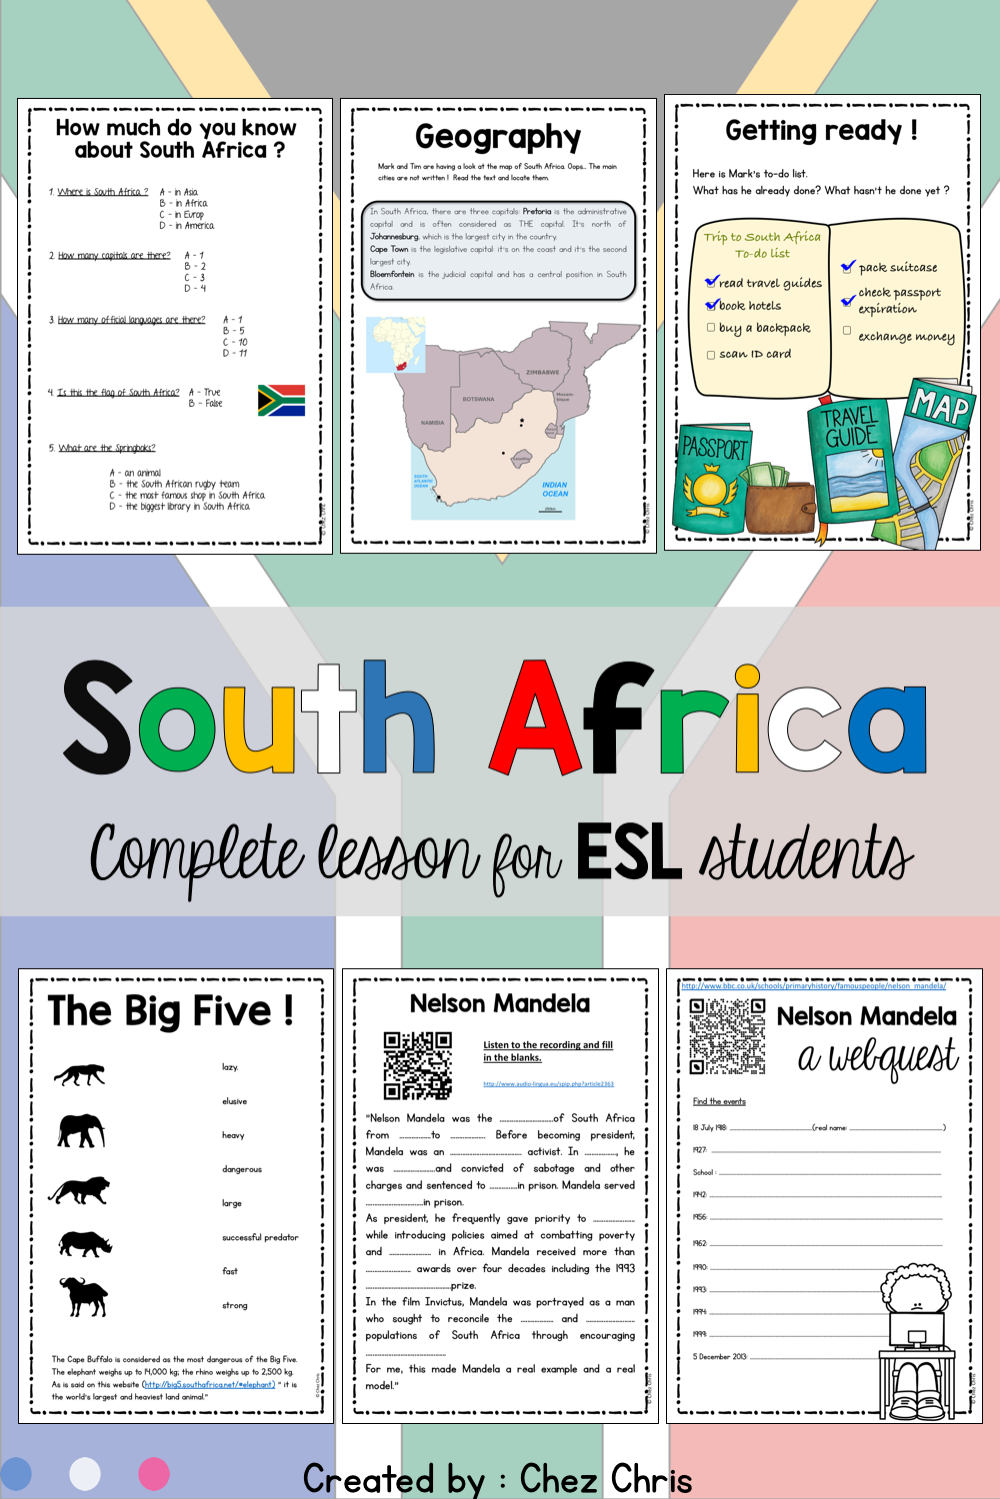 medium resolution of A Trip to South Africa - Complete Lesson   Africa lesson plans